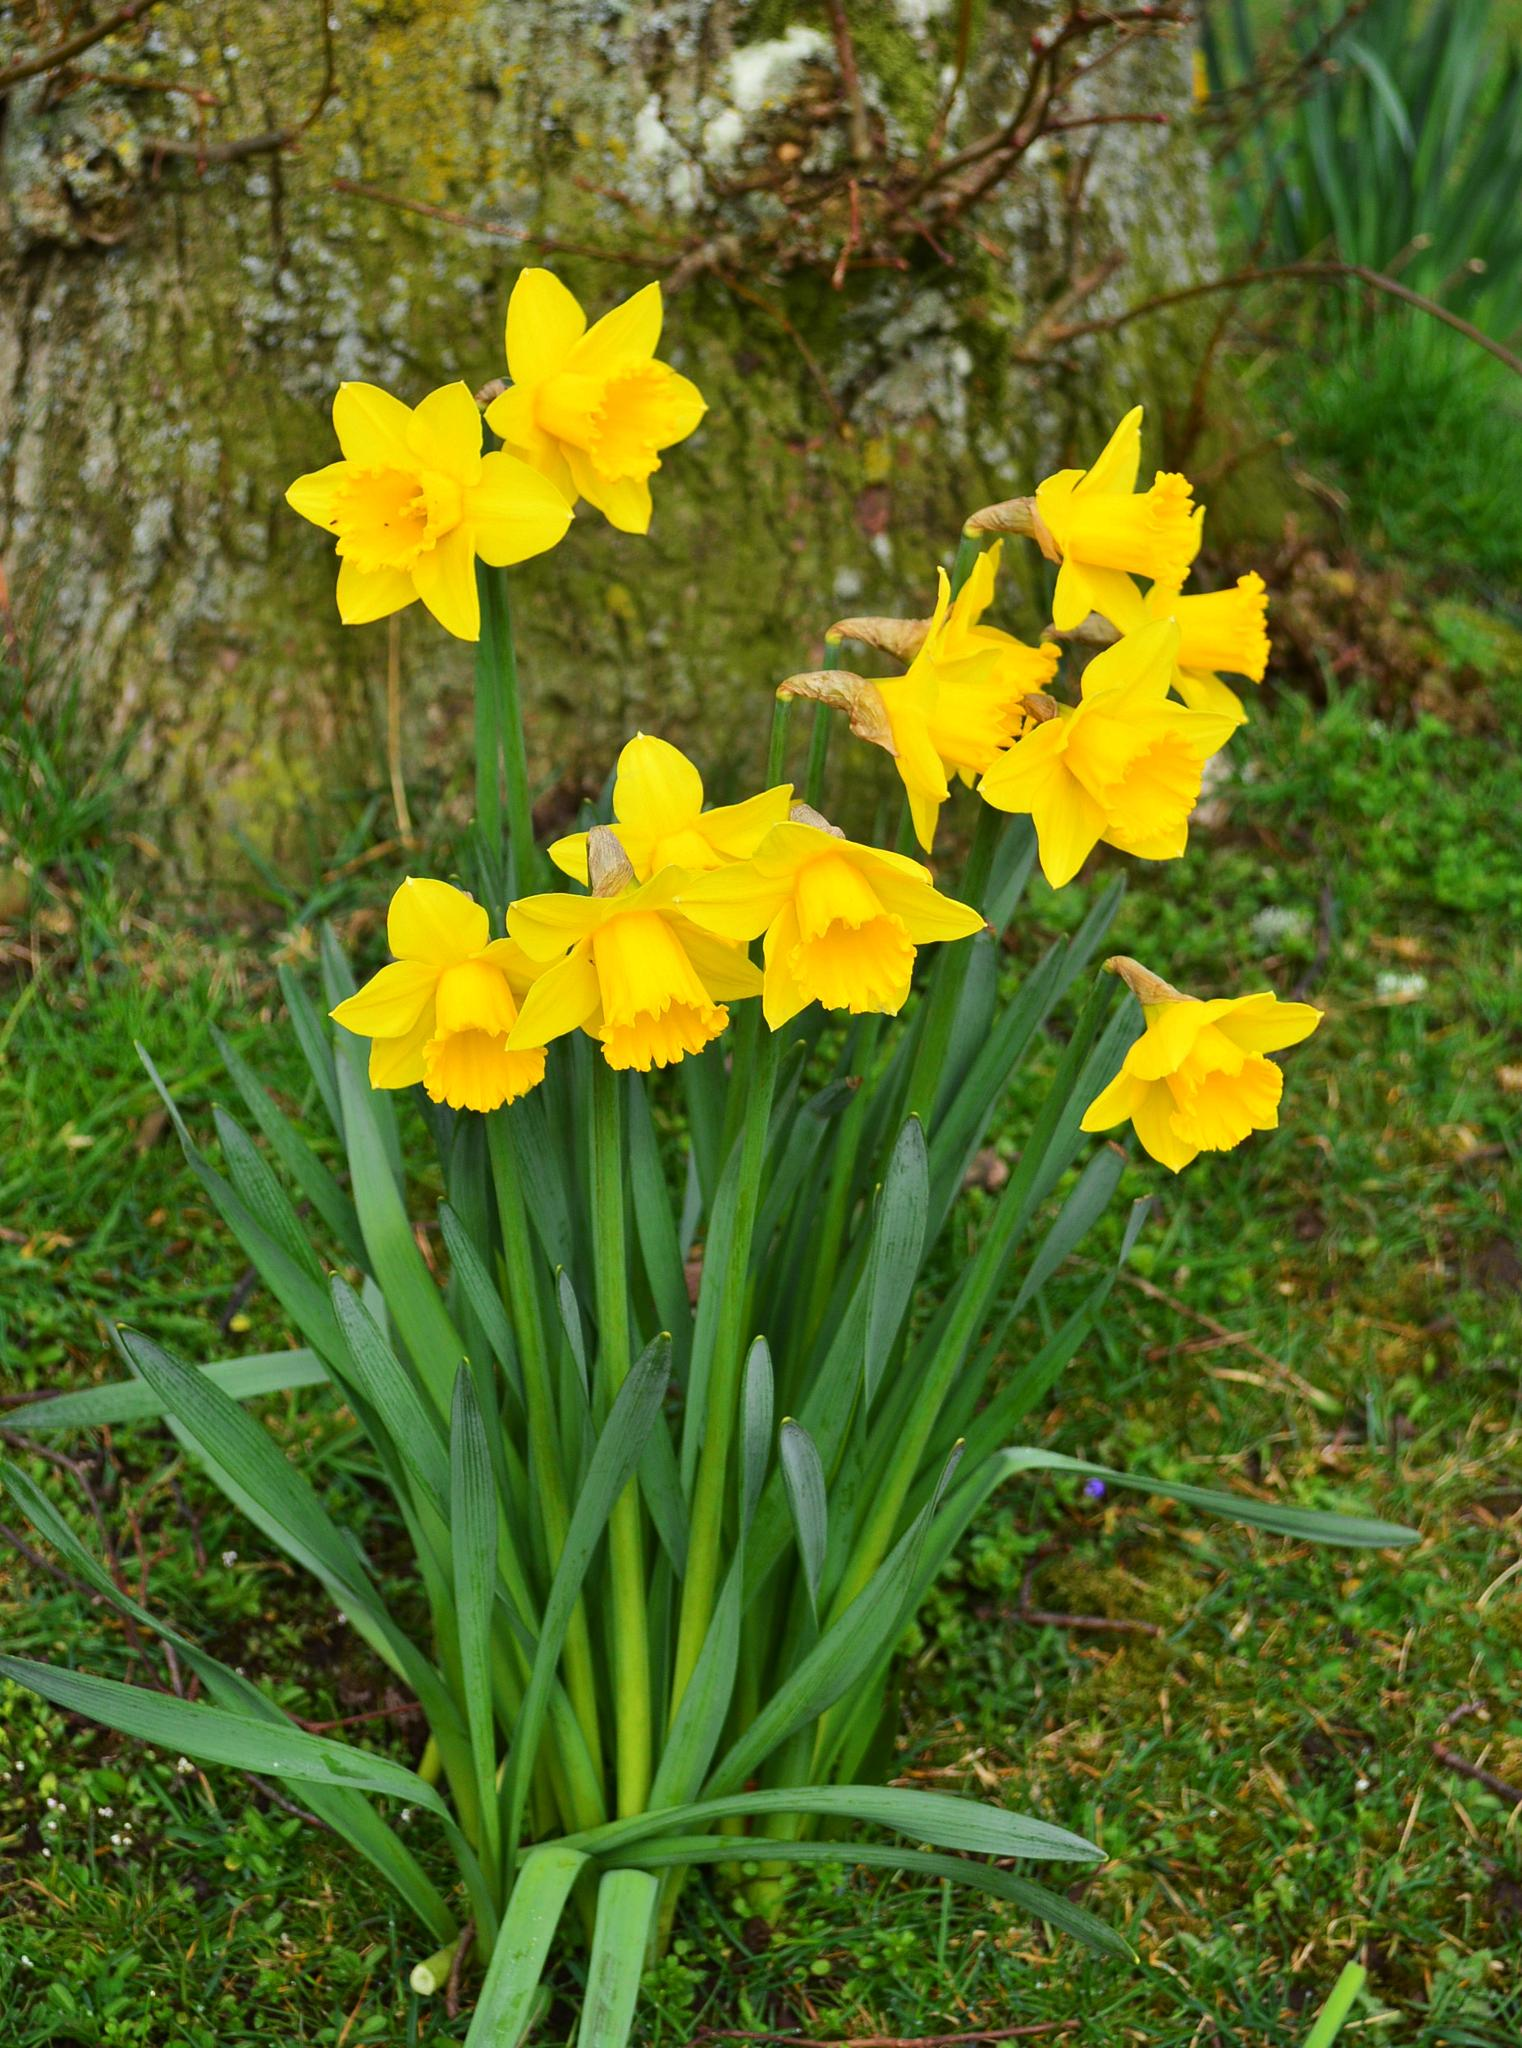 Daffodils by andrewwalker14